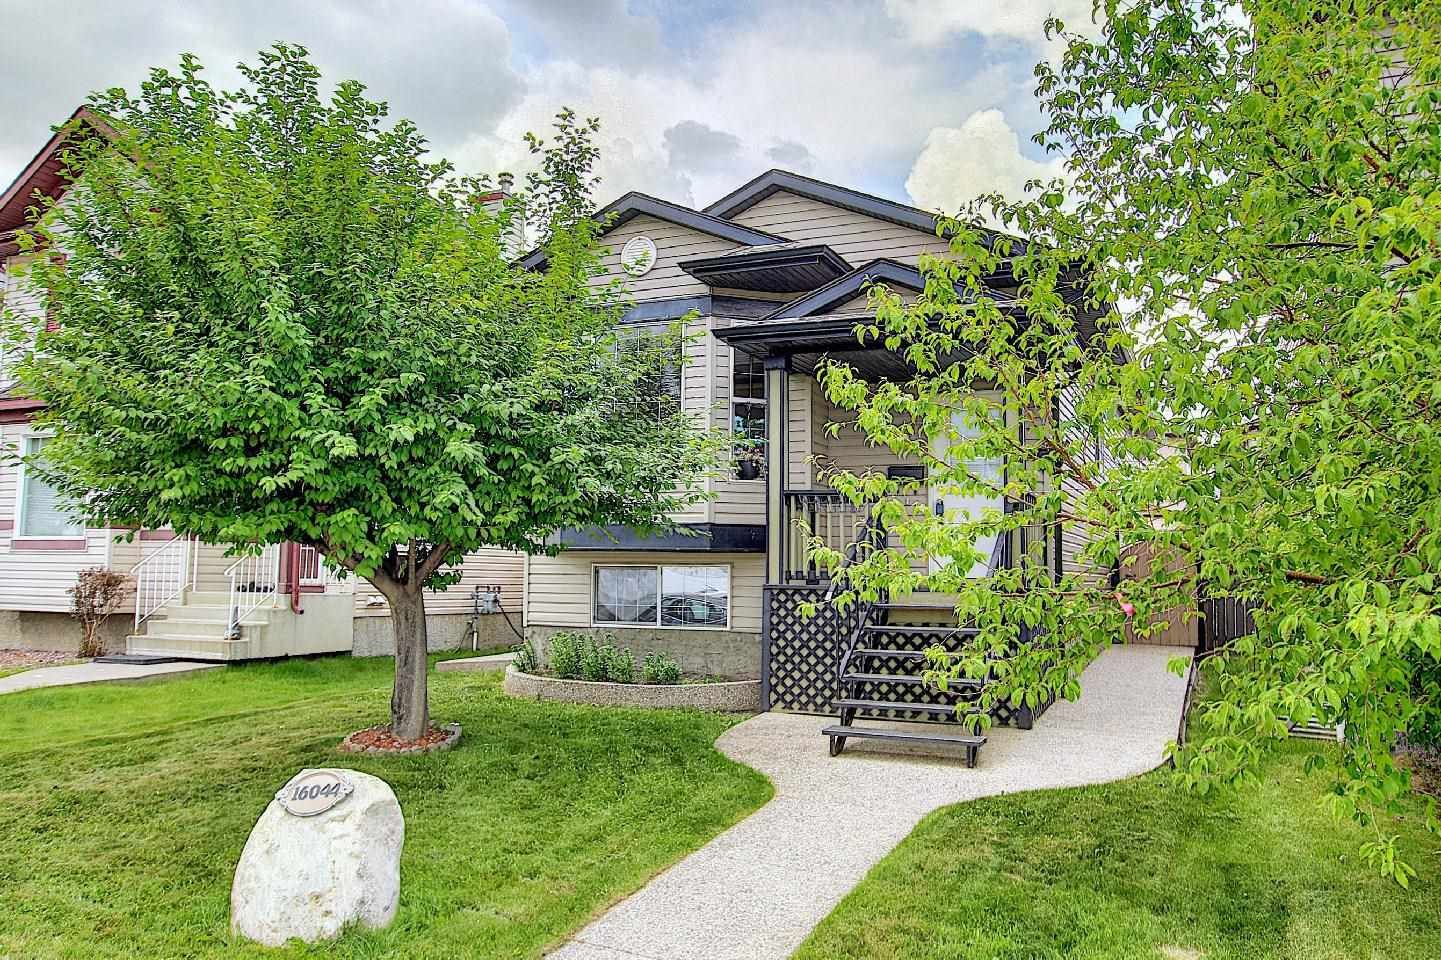 Main Photo: 16044 38 street NW in Edmonton: Zone 03 House for sale : MLS®# E4248402